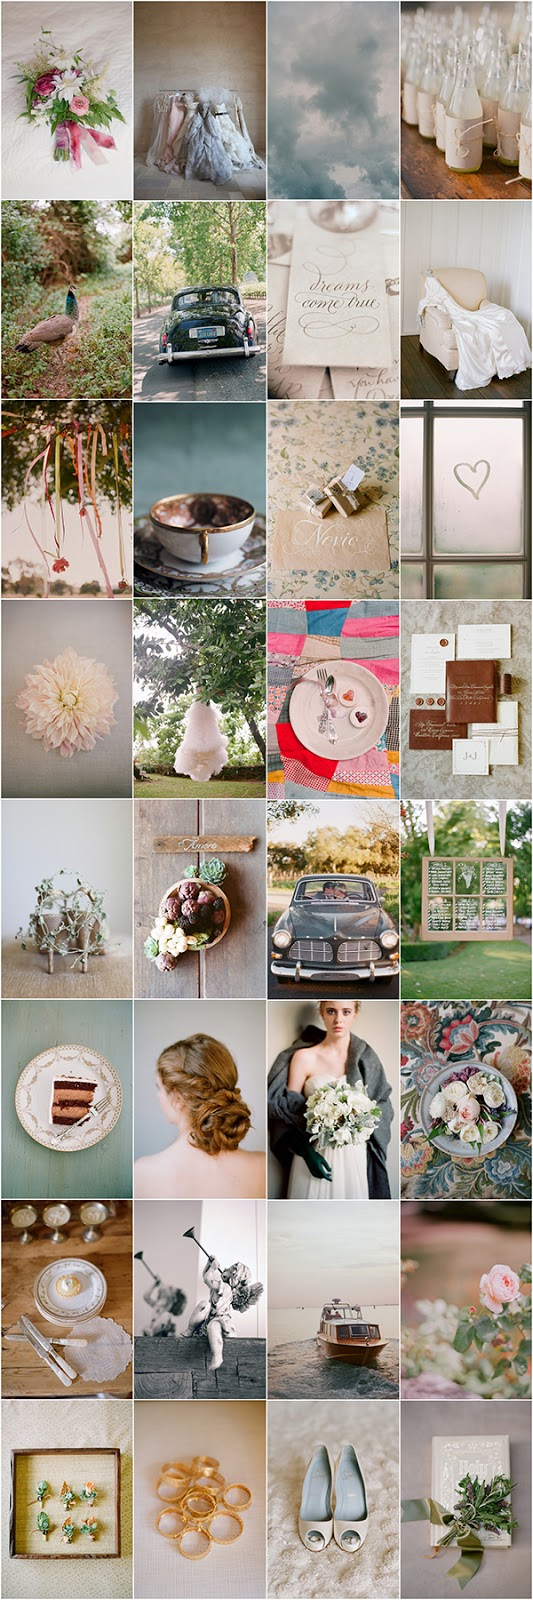 5-tips-for-documenting-the-lovely-details-at-your-wedding | from elizabeth messina for oh lovely day